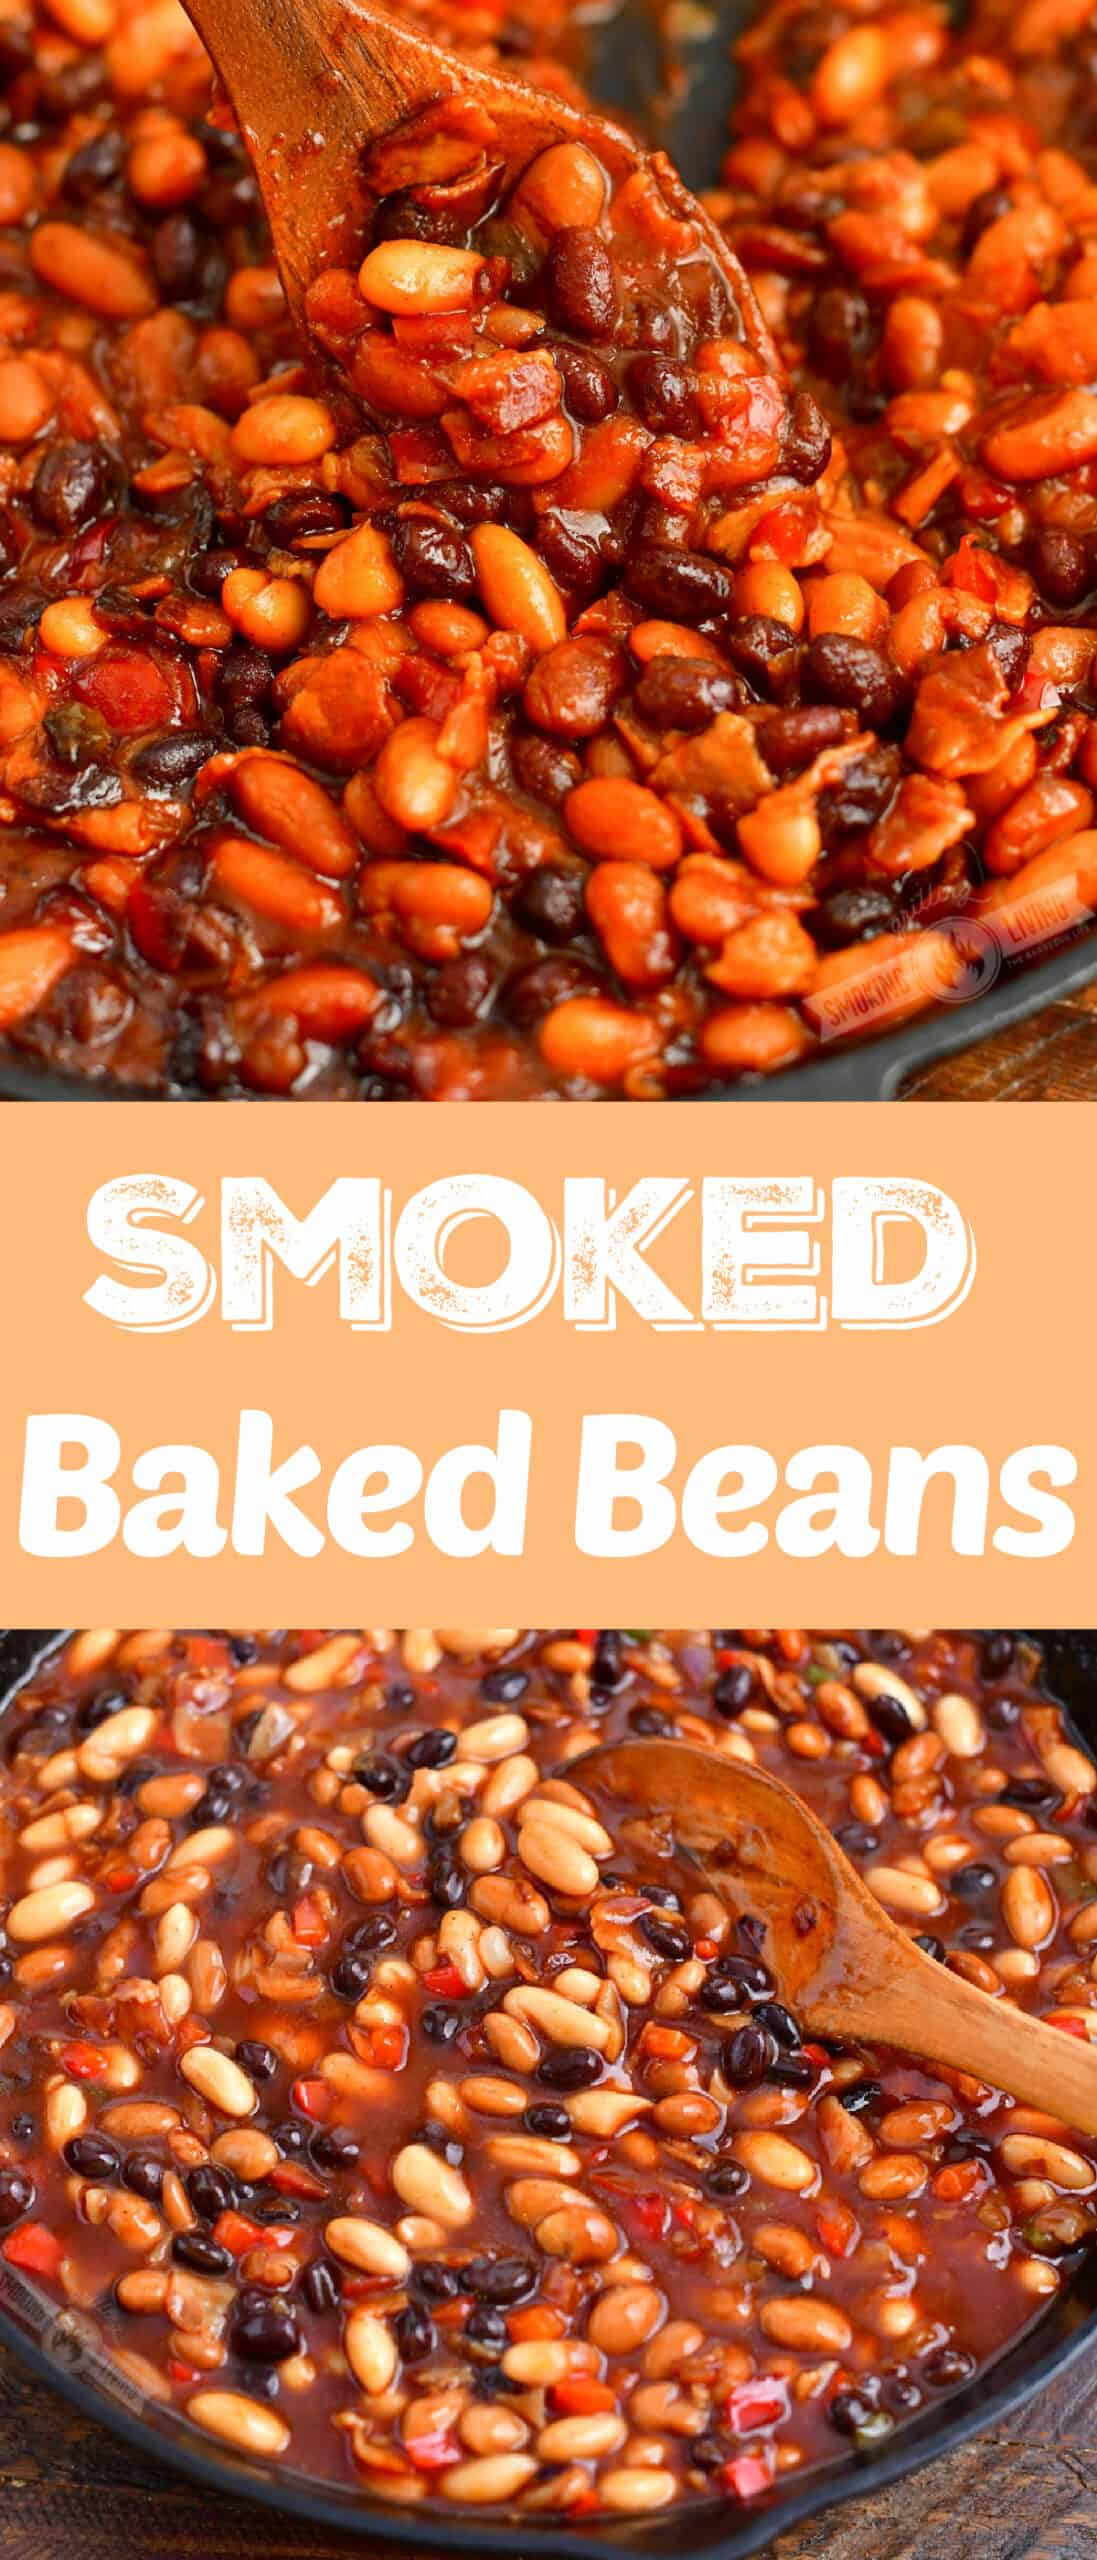 title collage of two images of smoked baked beans and title words in a middle